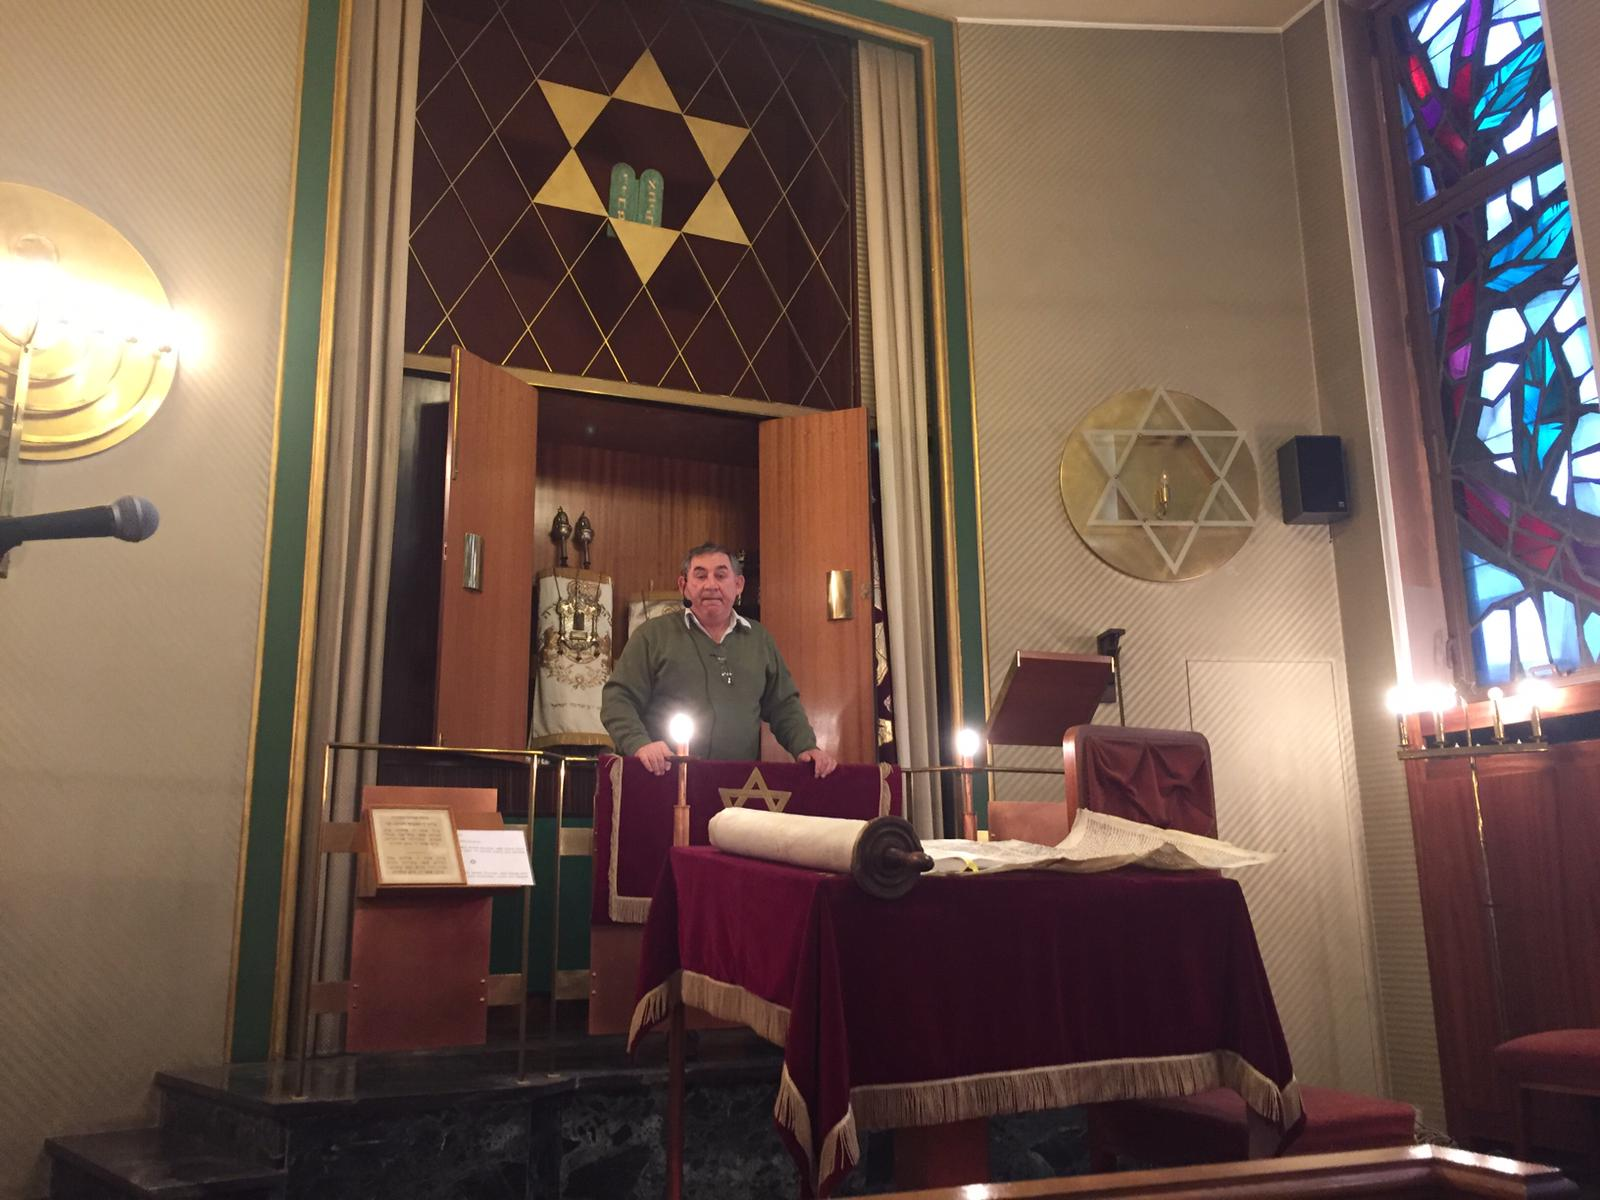 Synagogue: Community president Alexander Kogan explains the history and shows the torah scrolls